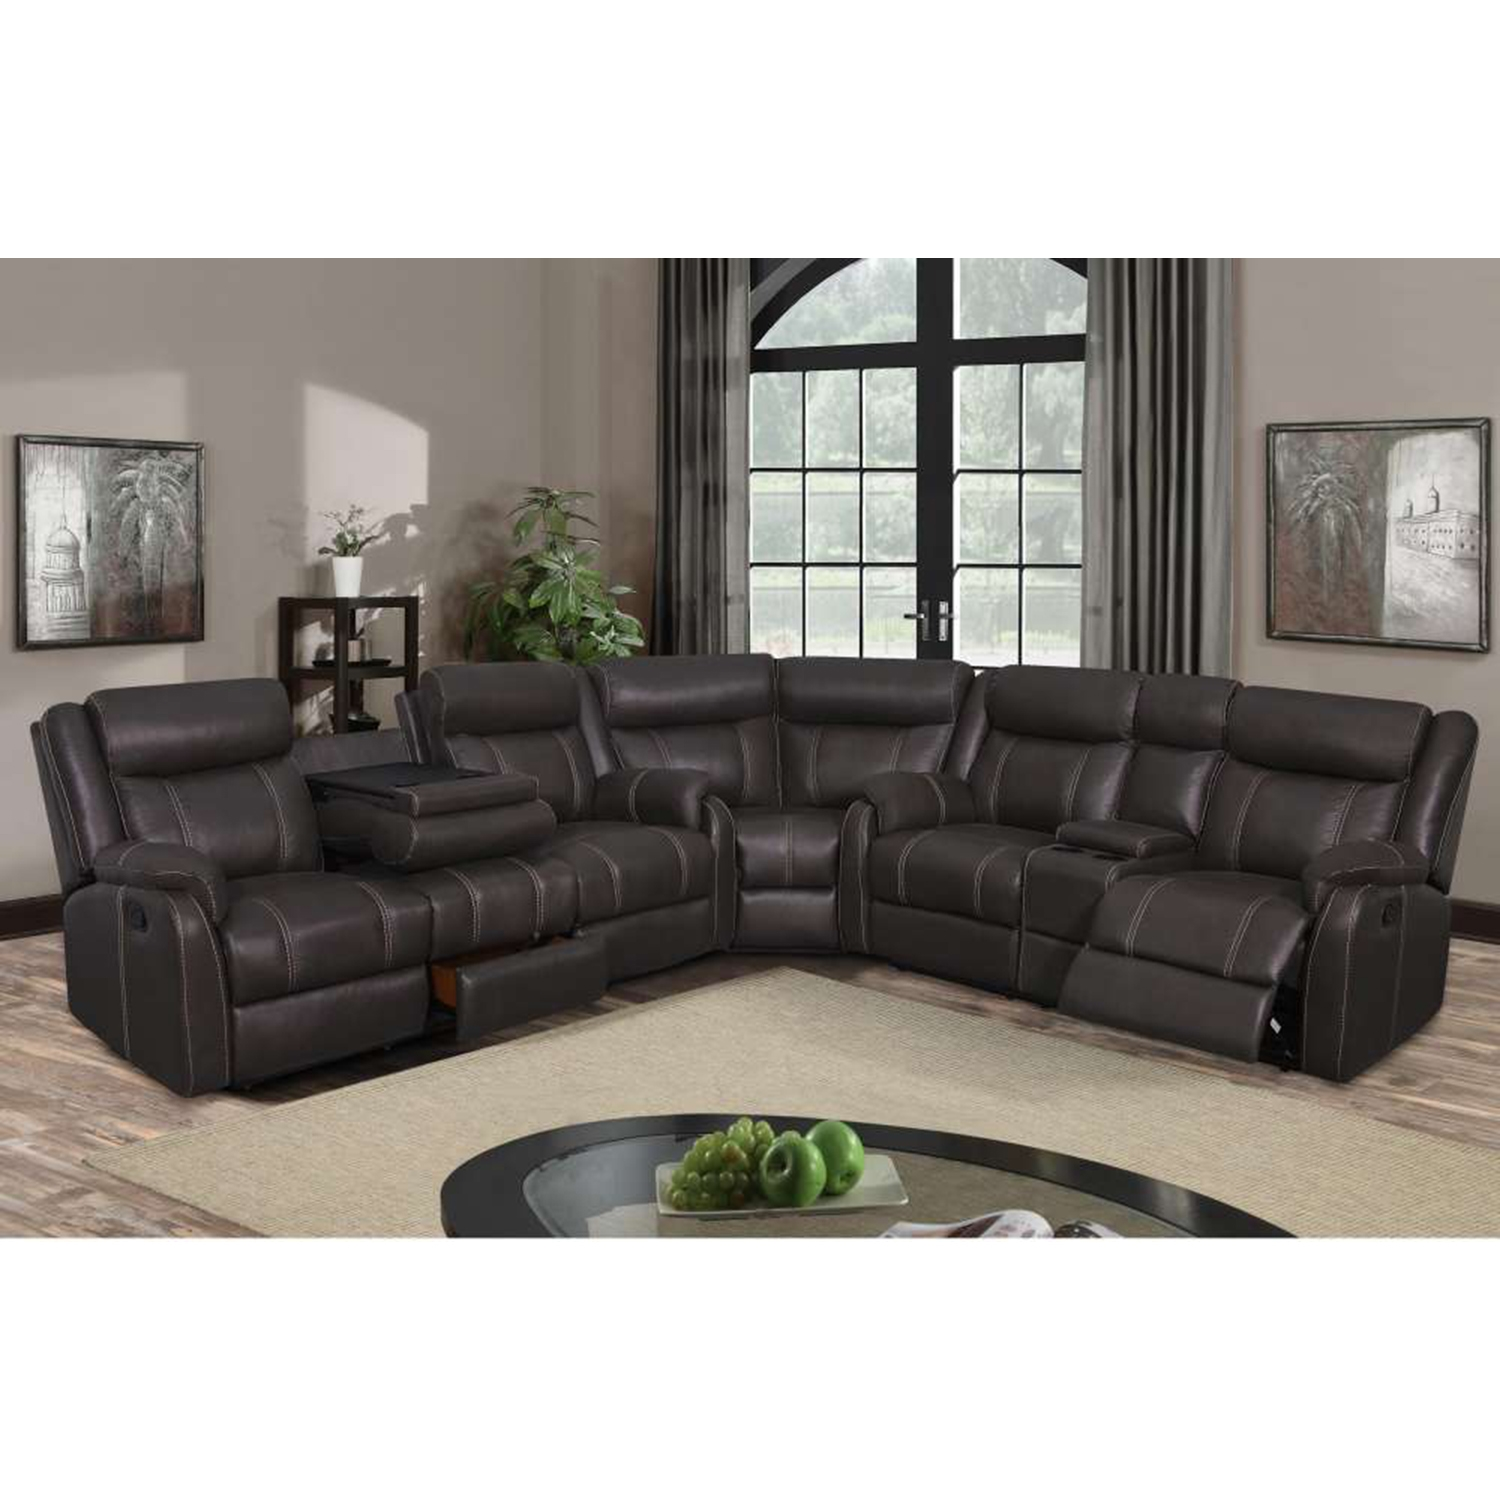 natalia 3piece sectional sofa in gin rummy seal sc 1 st dcg stores